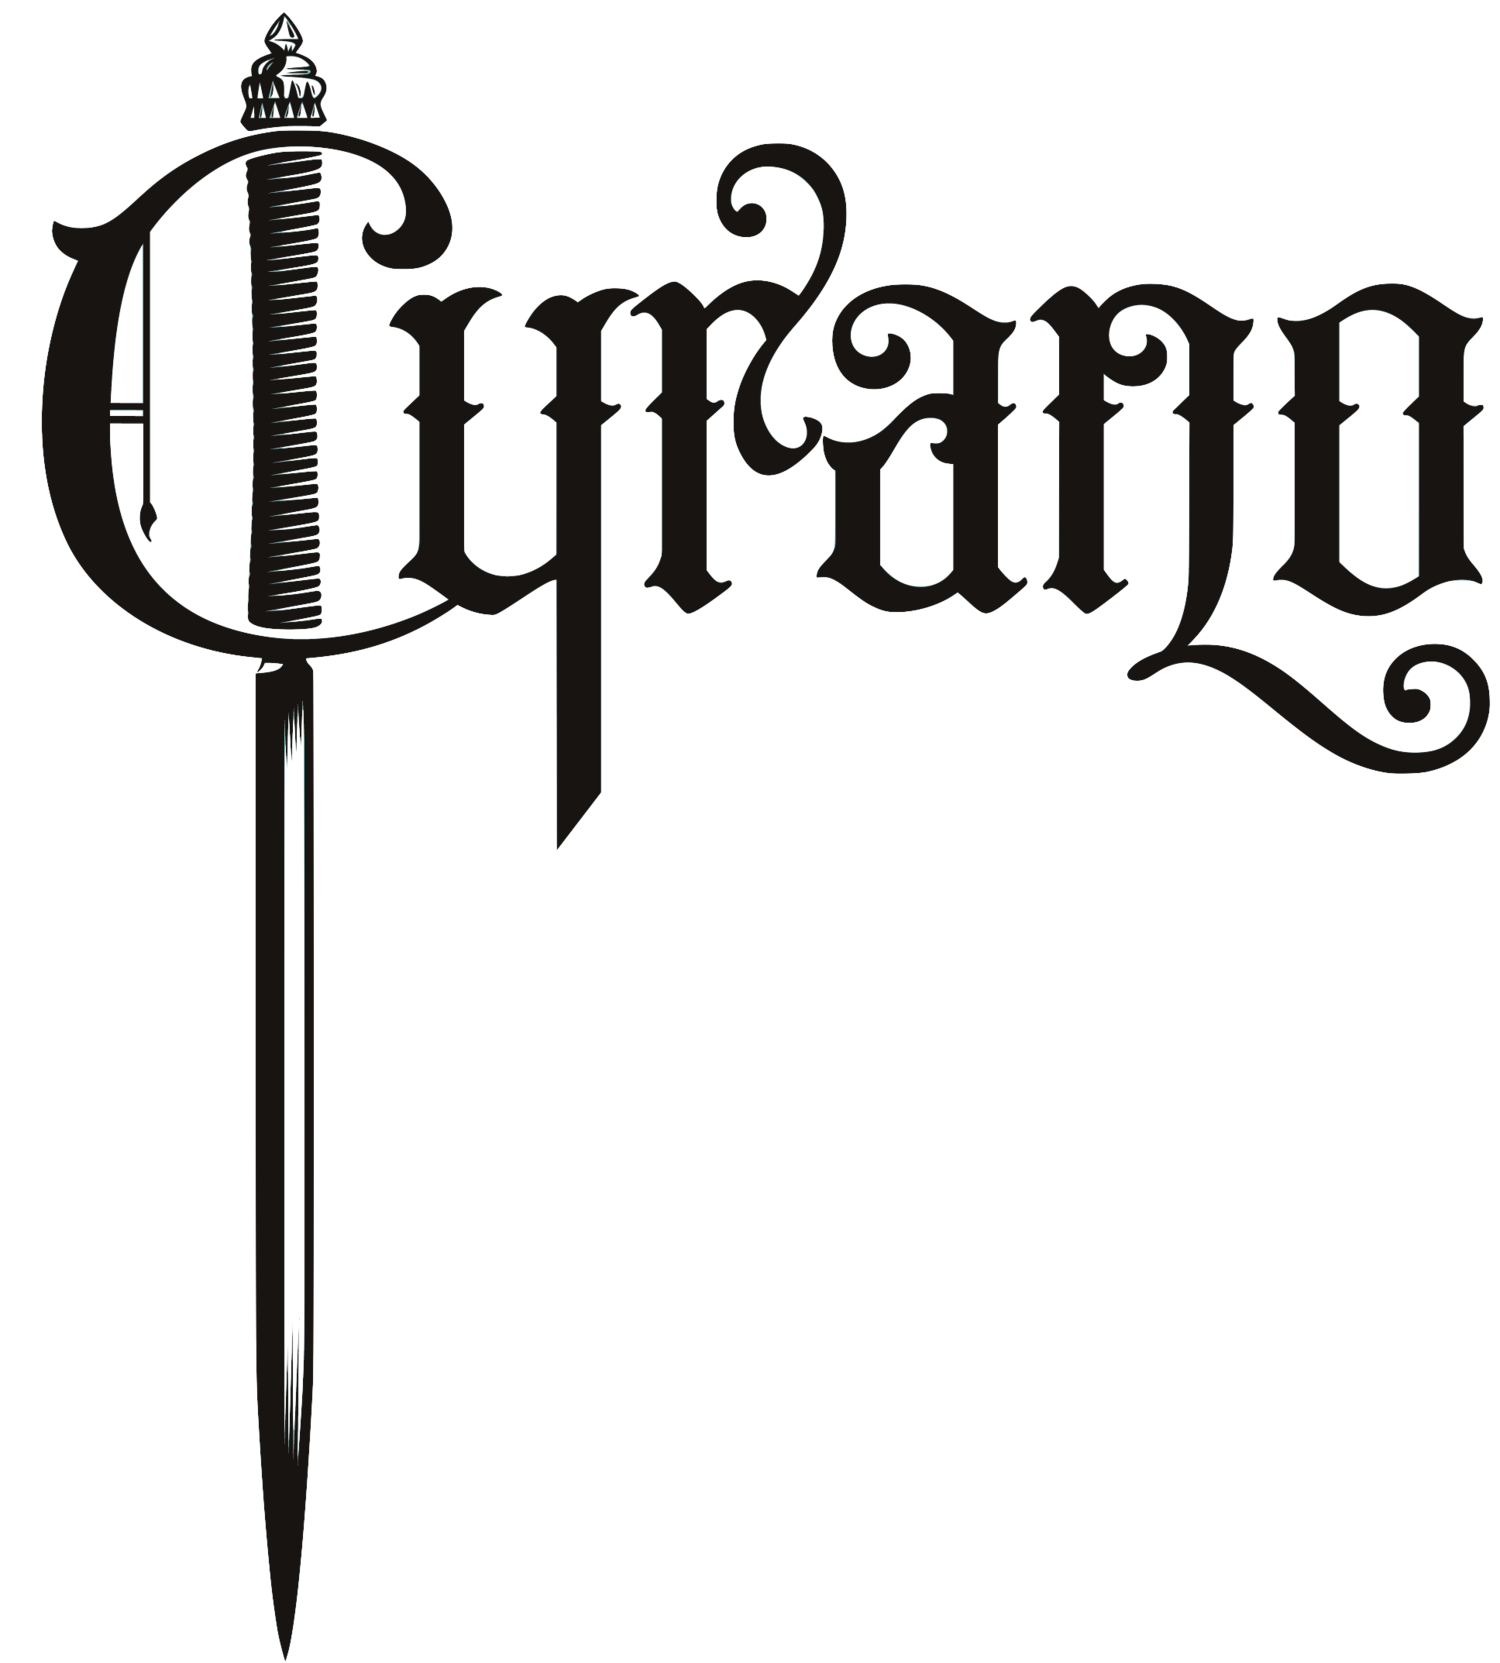 Cyrano - The World's best Armagnac